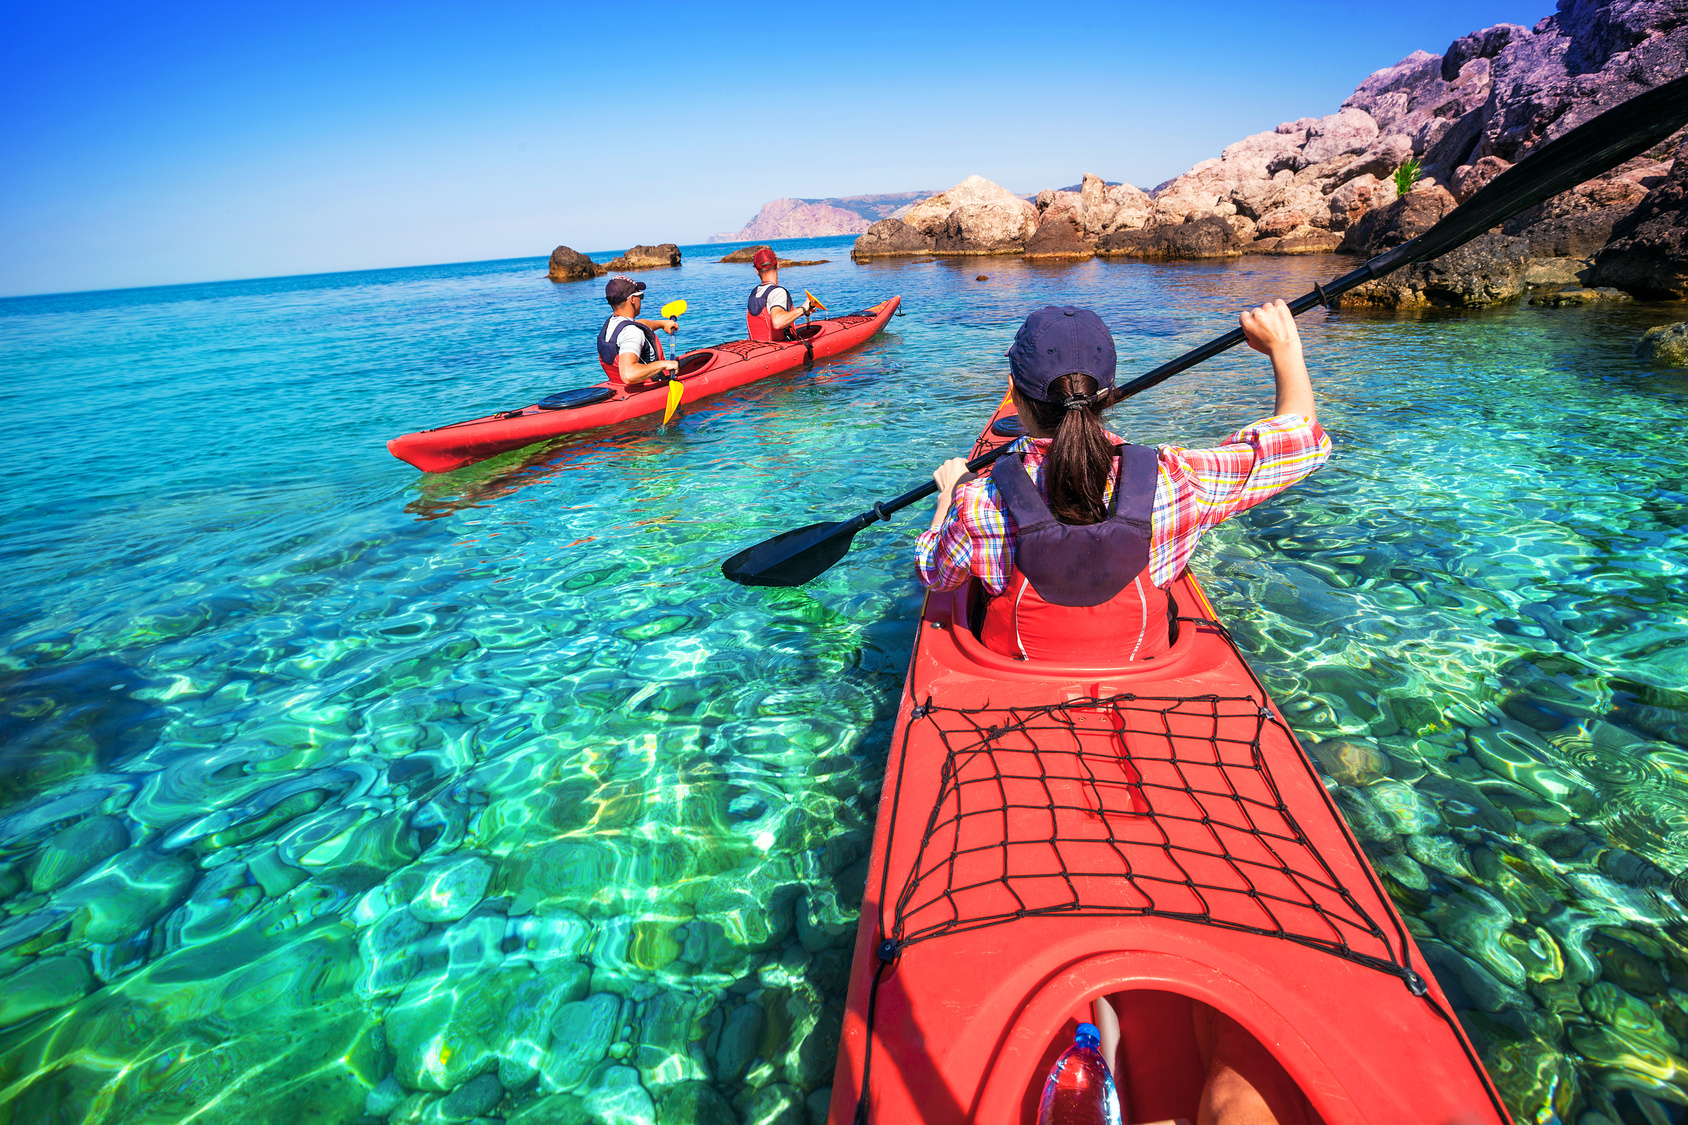 Get ready to Kayak this spring break with Kayaking Gear